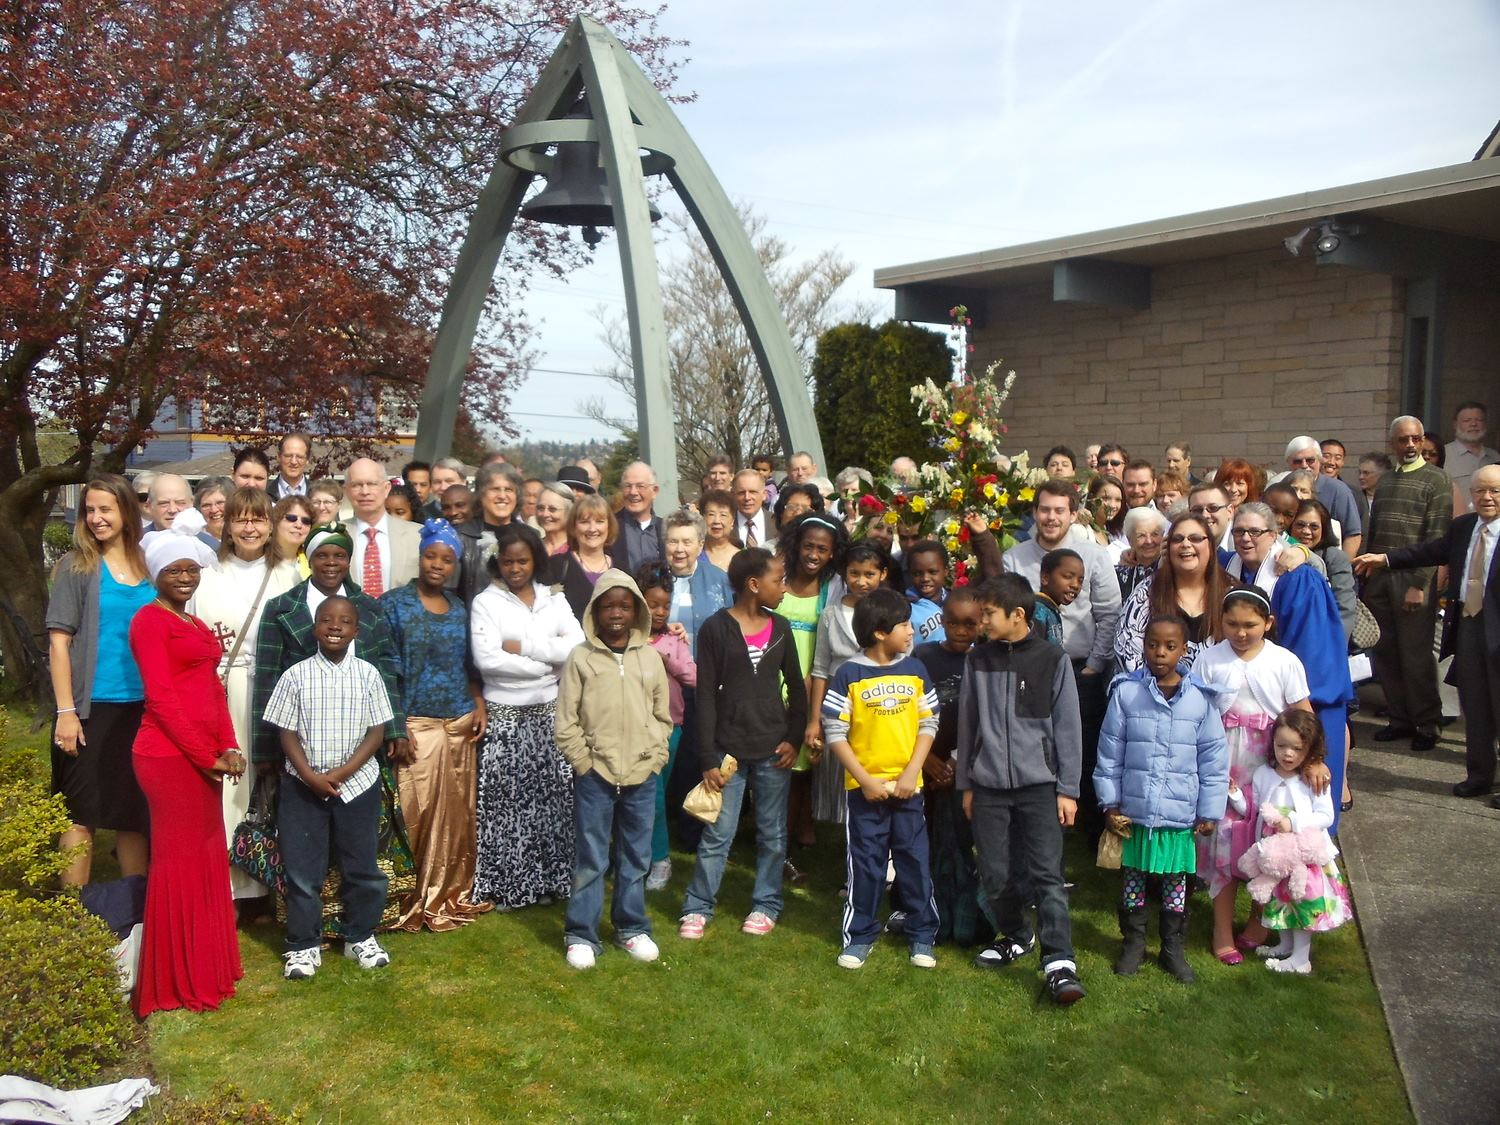 Rainier Beach Presbyterian Church - 7